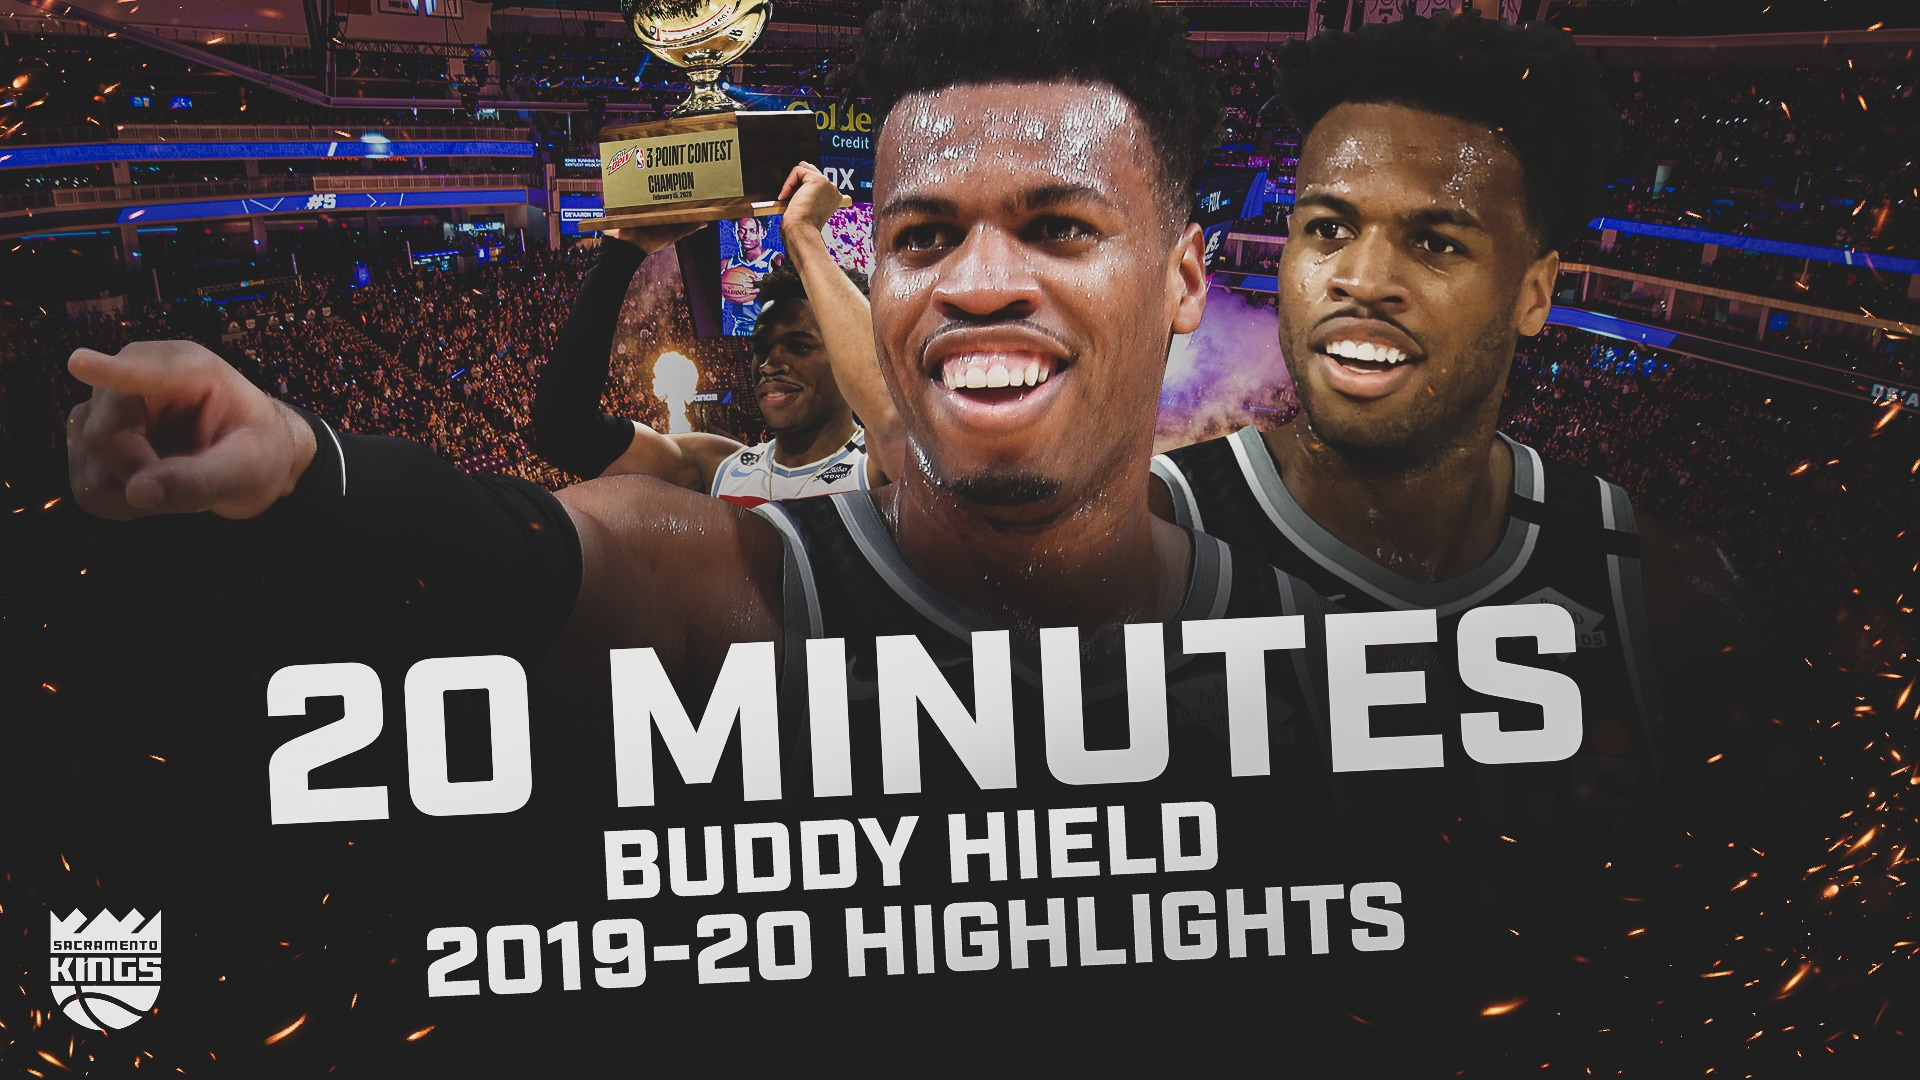 2019-20 Buddy Hield Highlights